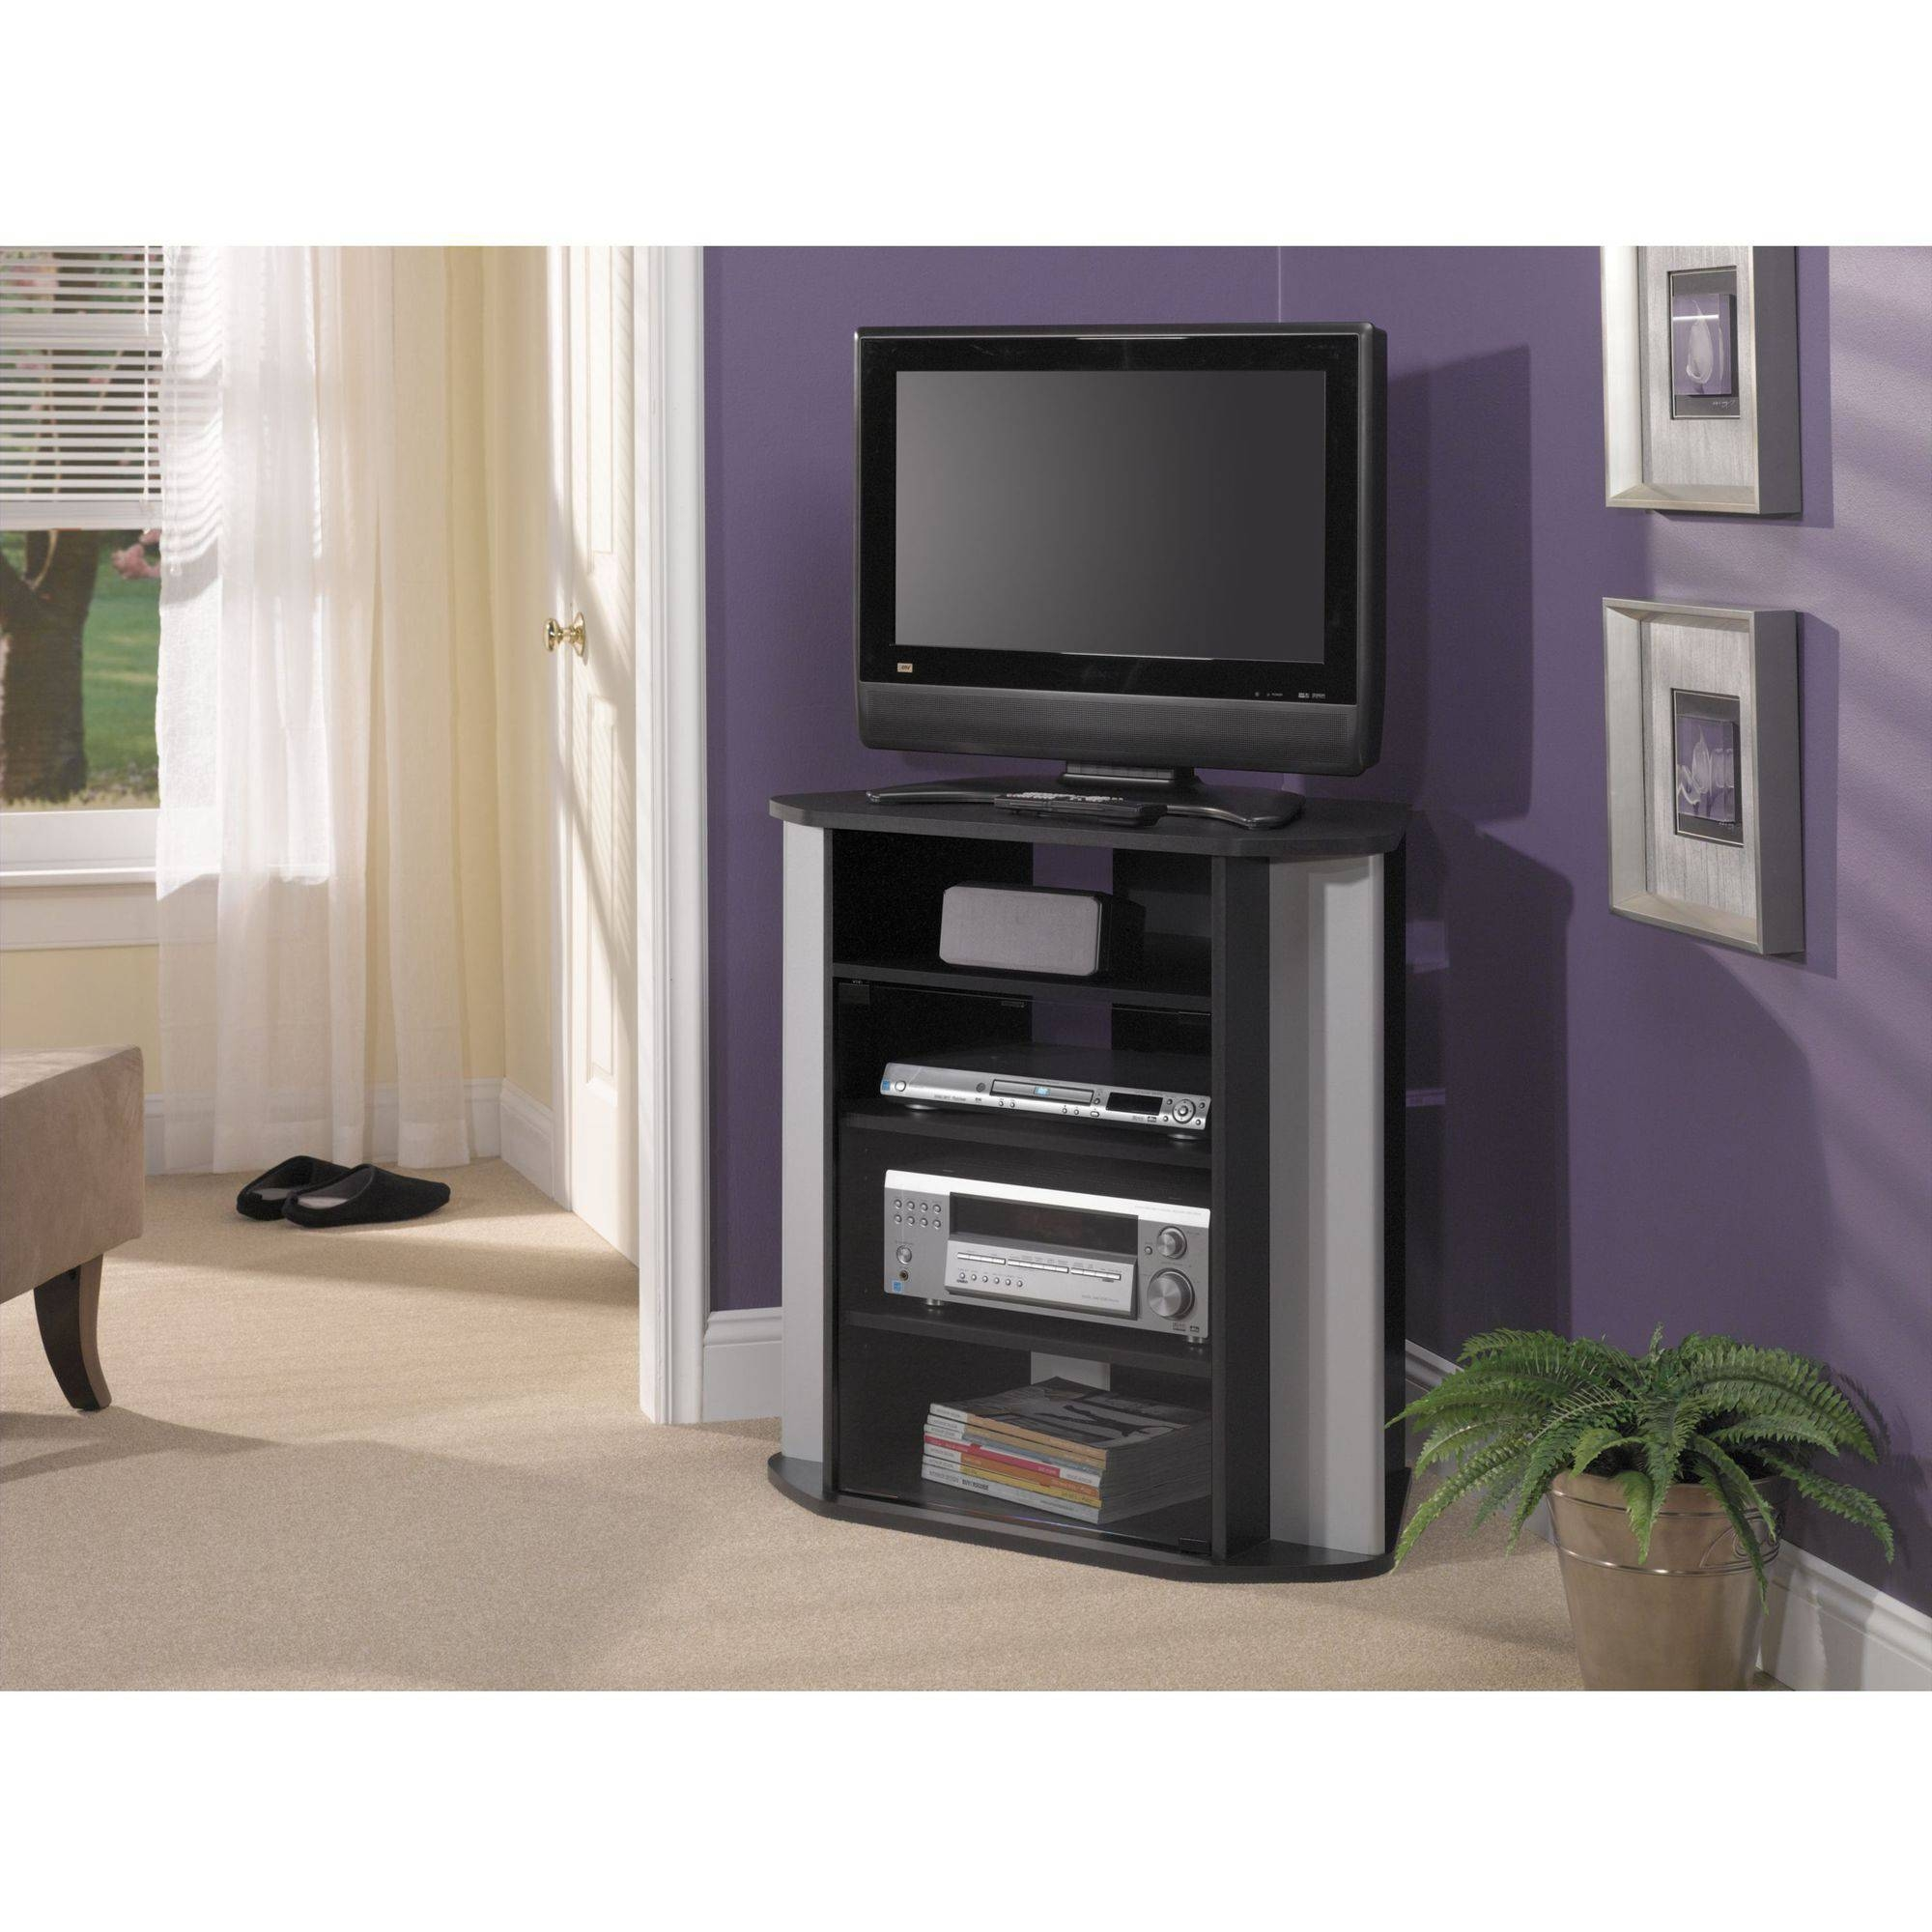 Bush Visions Black Tall Corner Tv Stand For Tvs Up To Hooker pertaining to Corner Tv Stands With Drawers (Image 3 of 15)